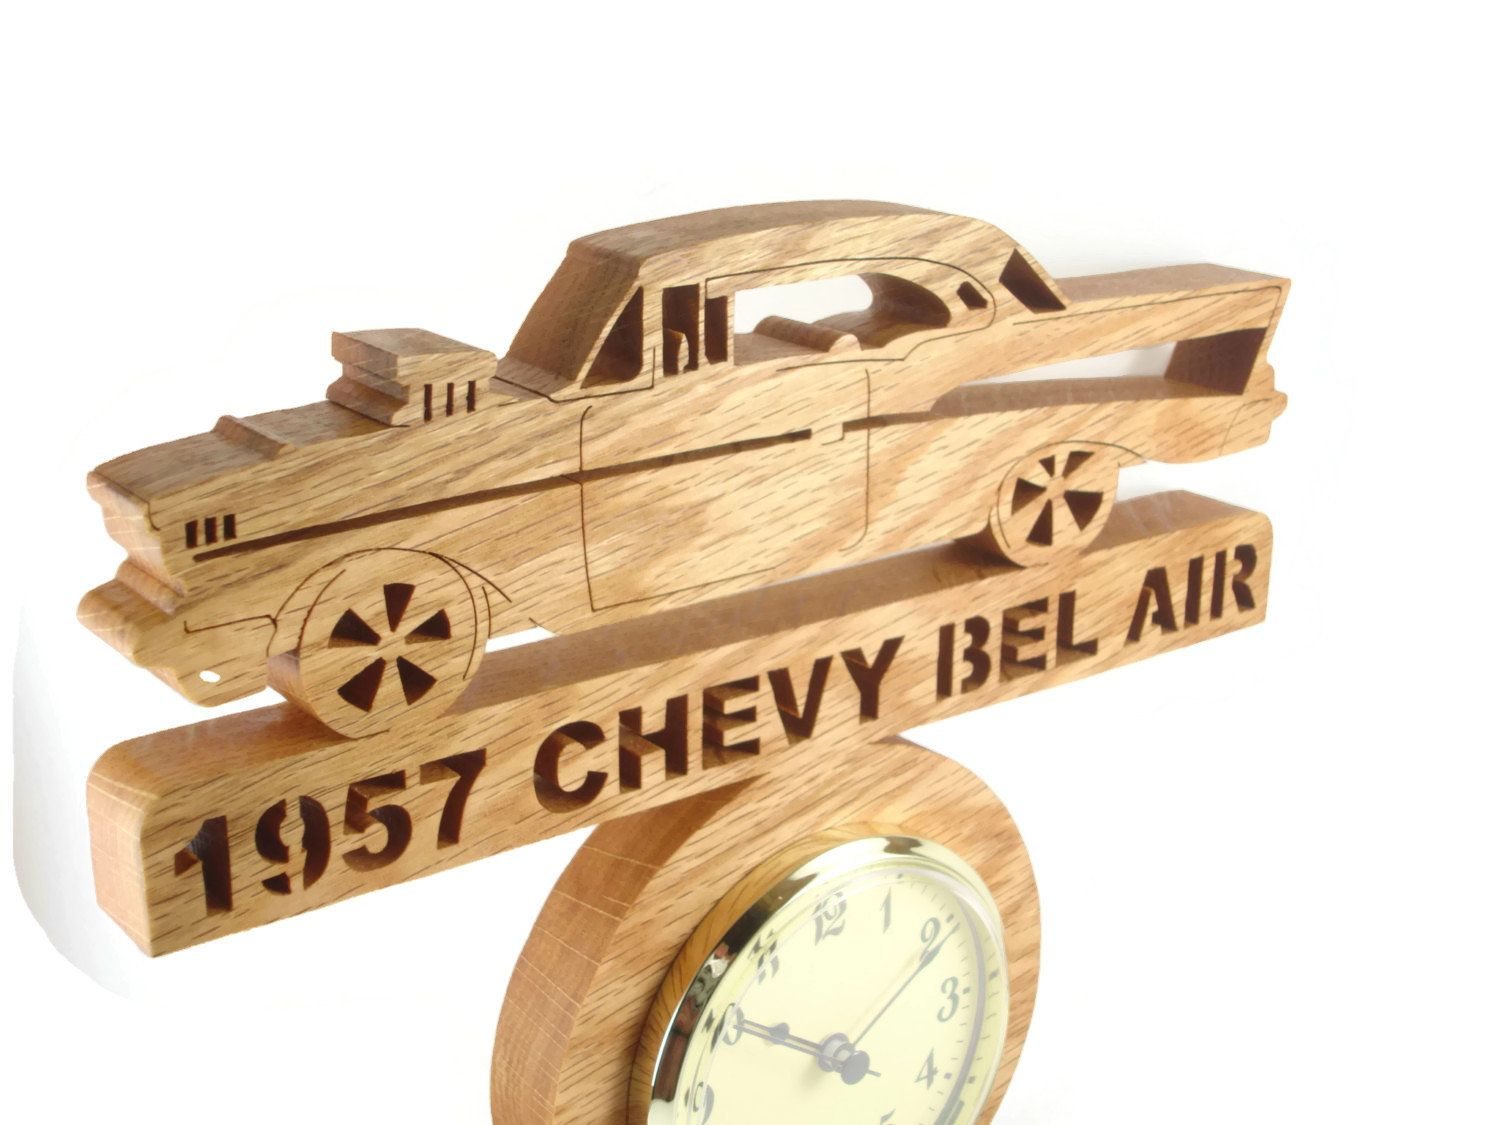 1957 Chevy Bel Air Wall Hanging Clock Handmade From Oak Wood By Kevskrafts Hanging Clock Hanging Flower Wall Wall Hanging